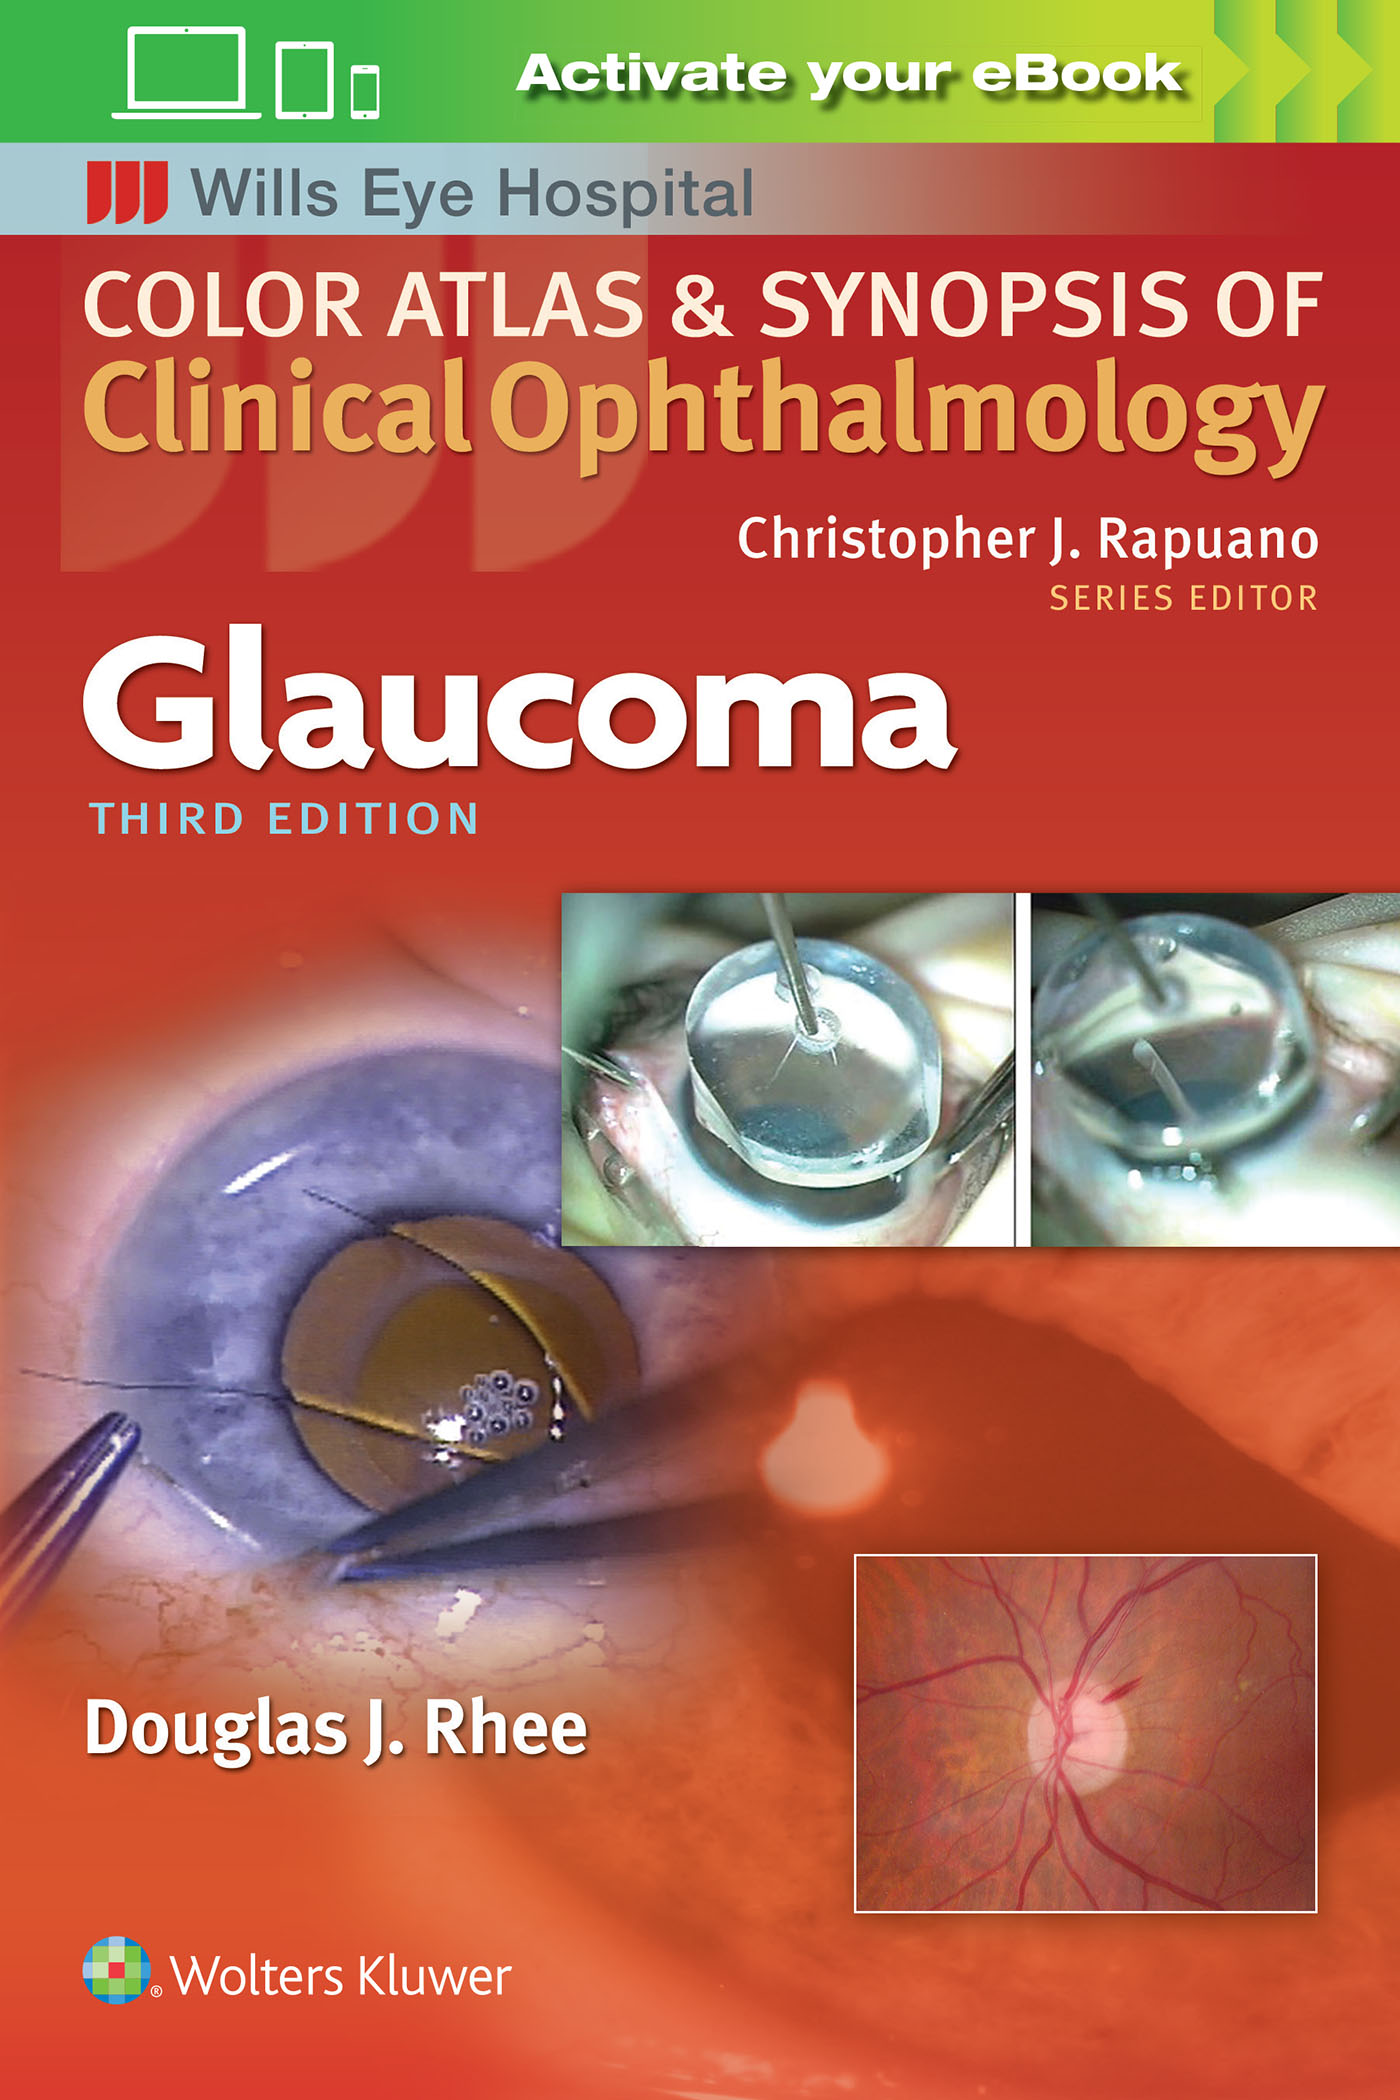 Color Atlas and Synopsis of Clinical Ophthalmology - Glaucoma